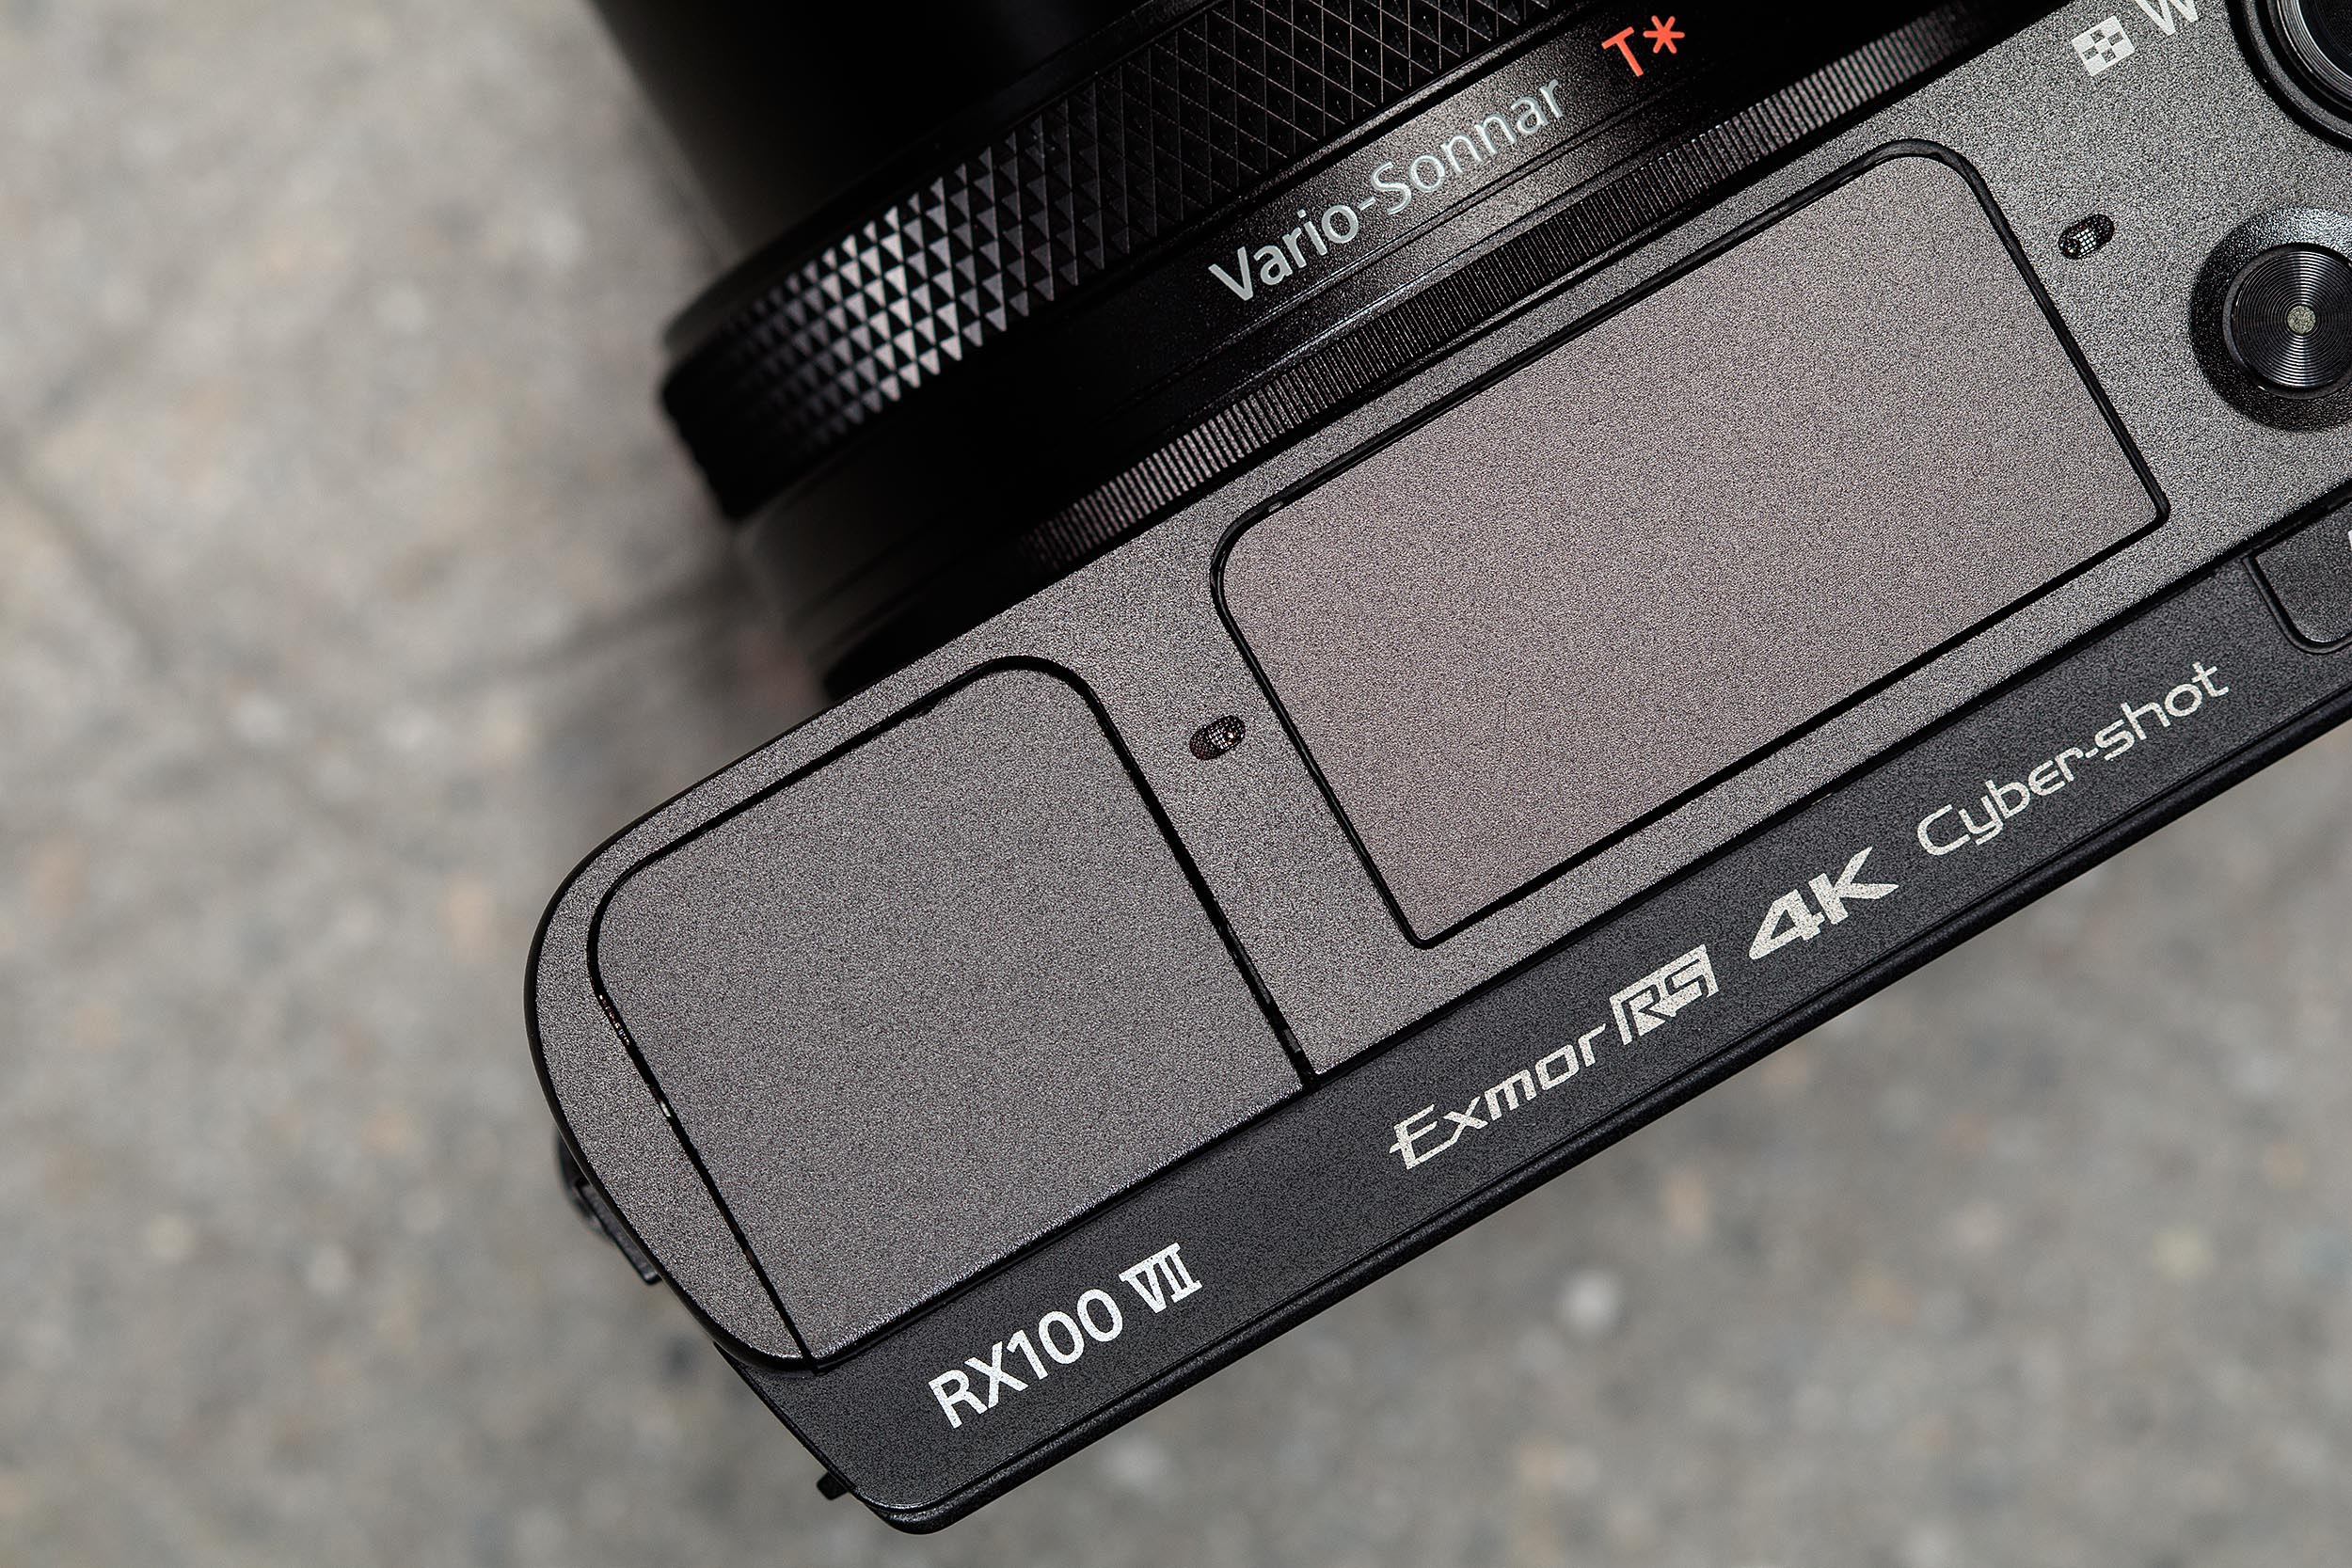 Sony Cyber-shot RX100 VII: What you need to know: Digital